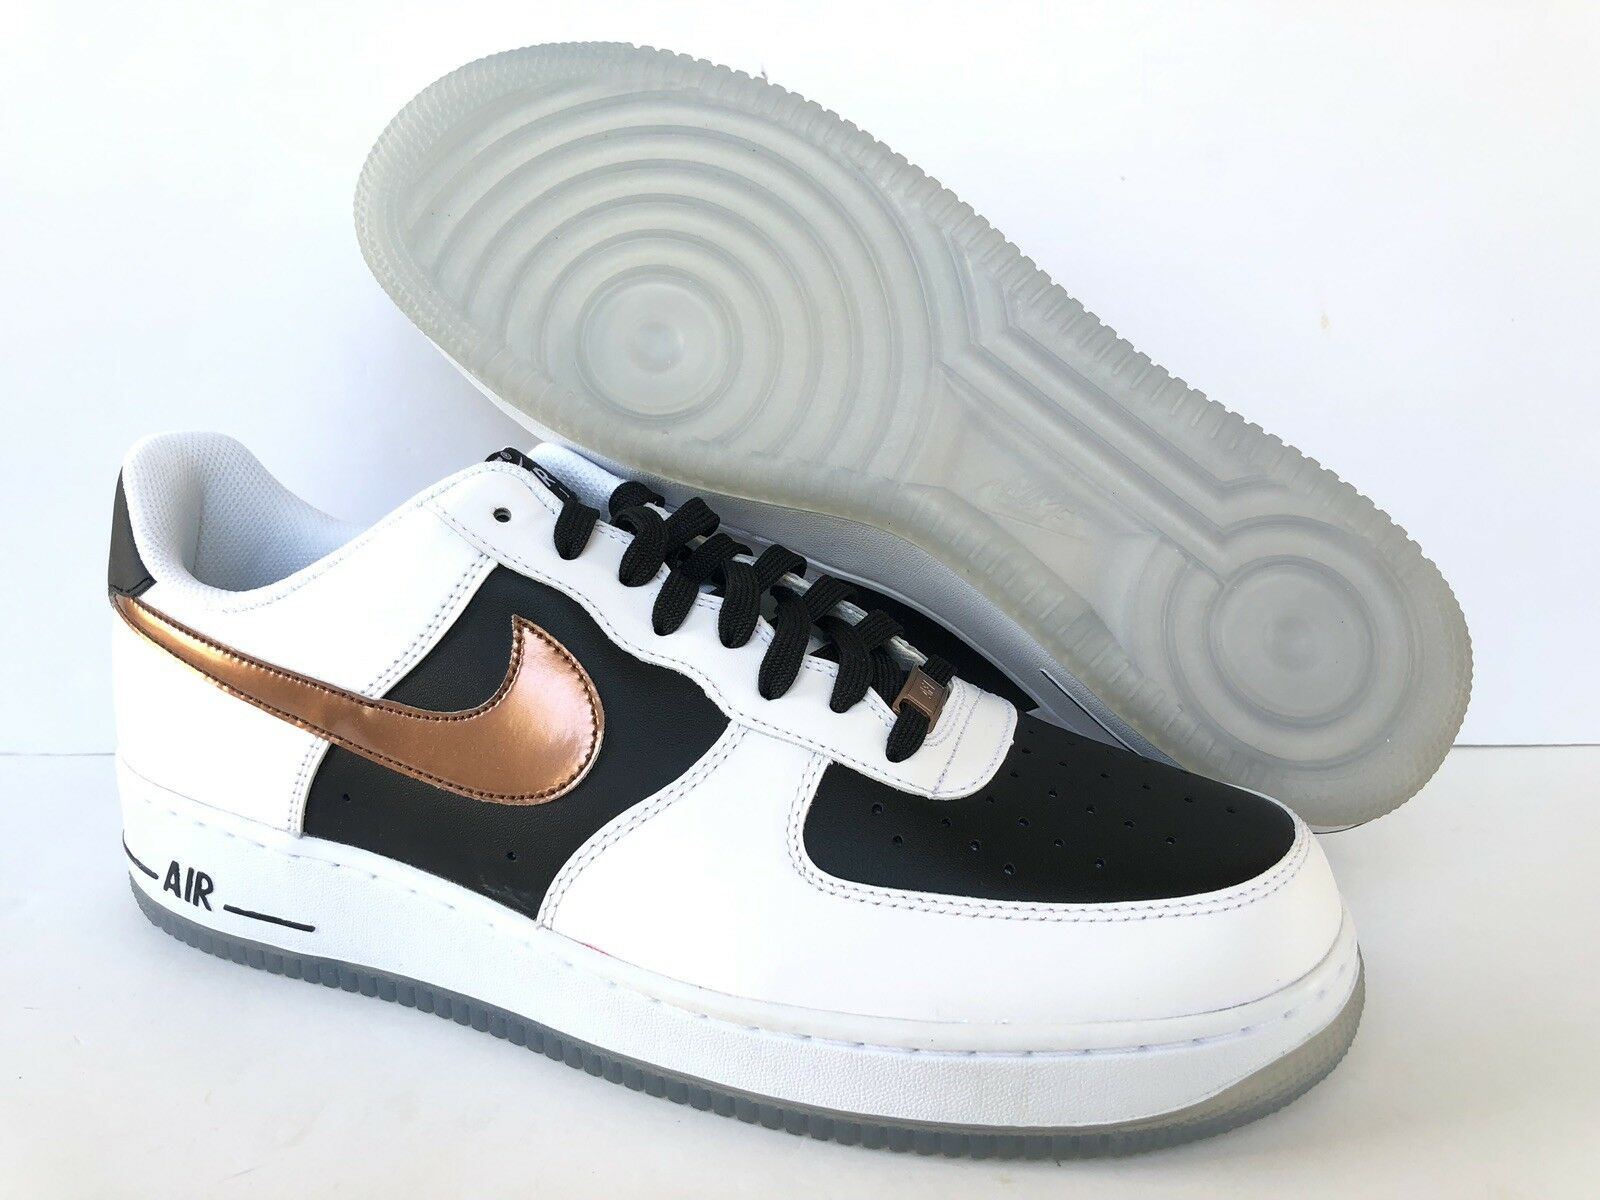 NIKE AIR FORCE 1 Weiß COPPER-schwarz  US MEN SZ 13